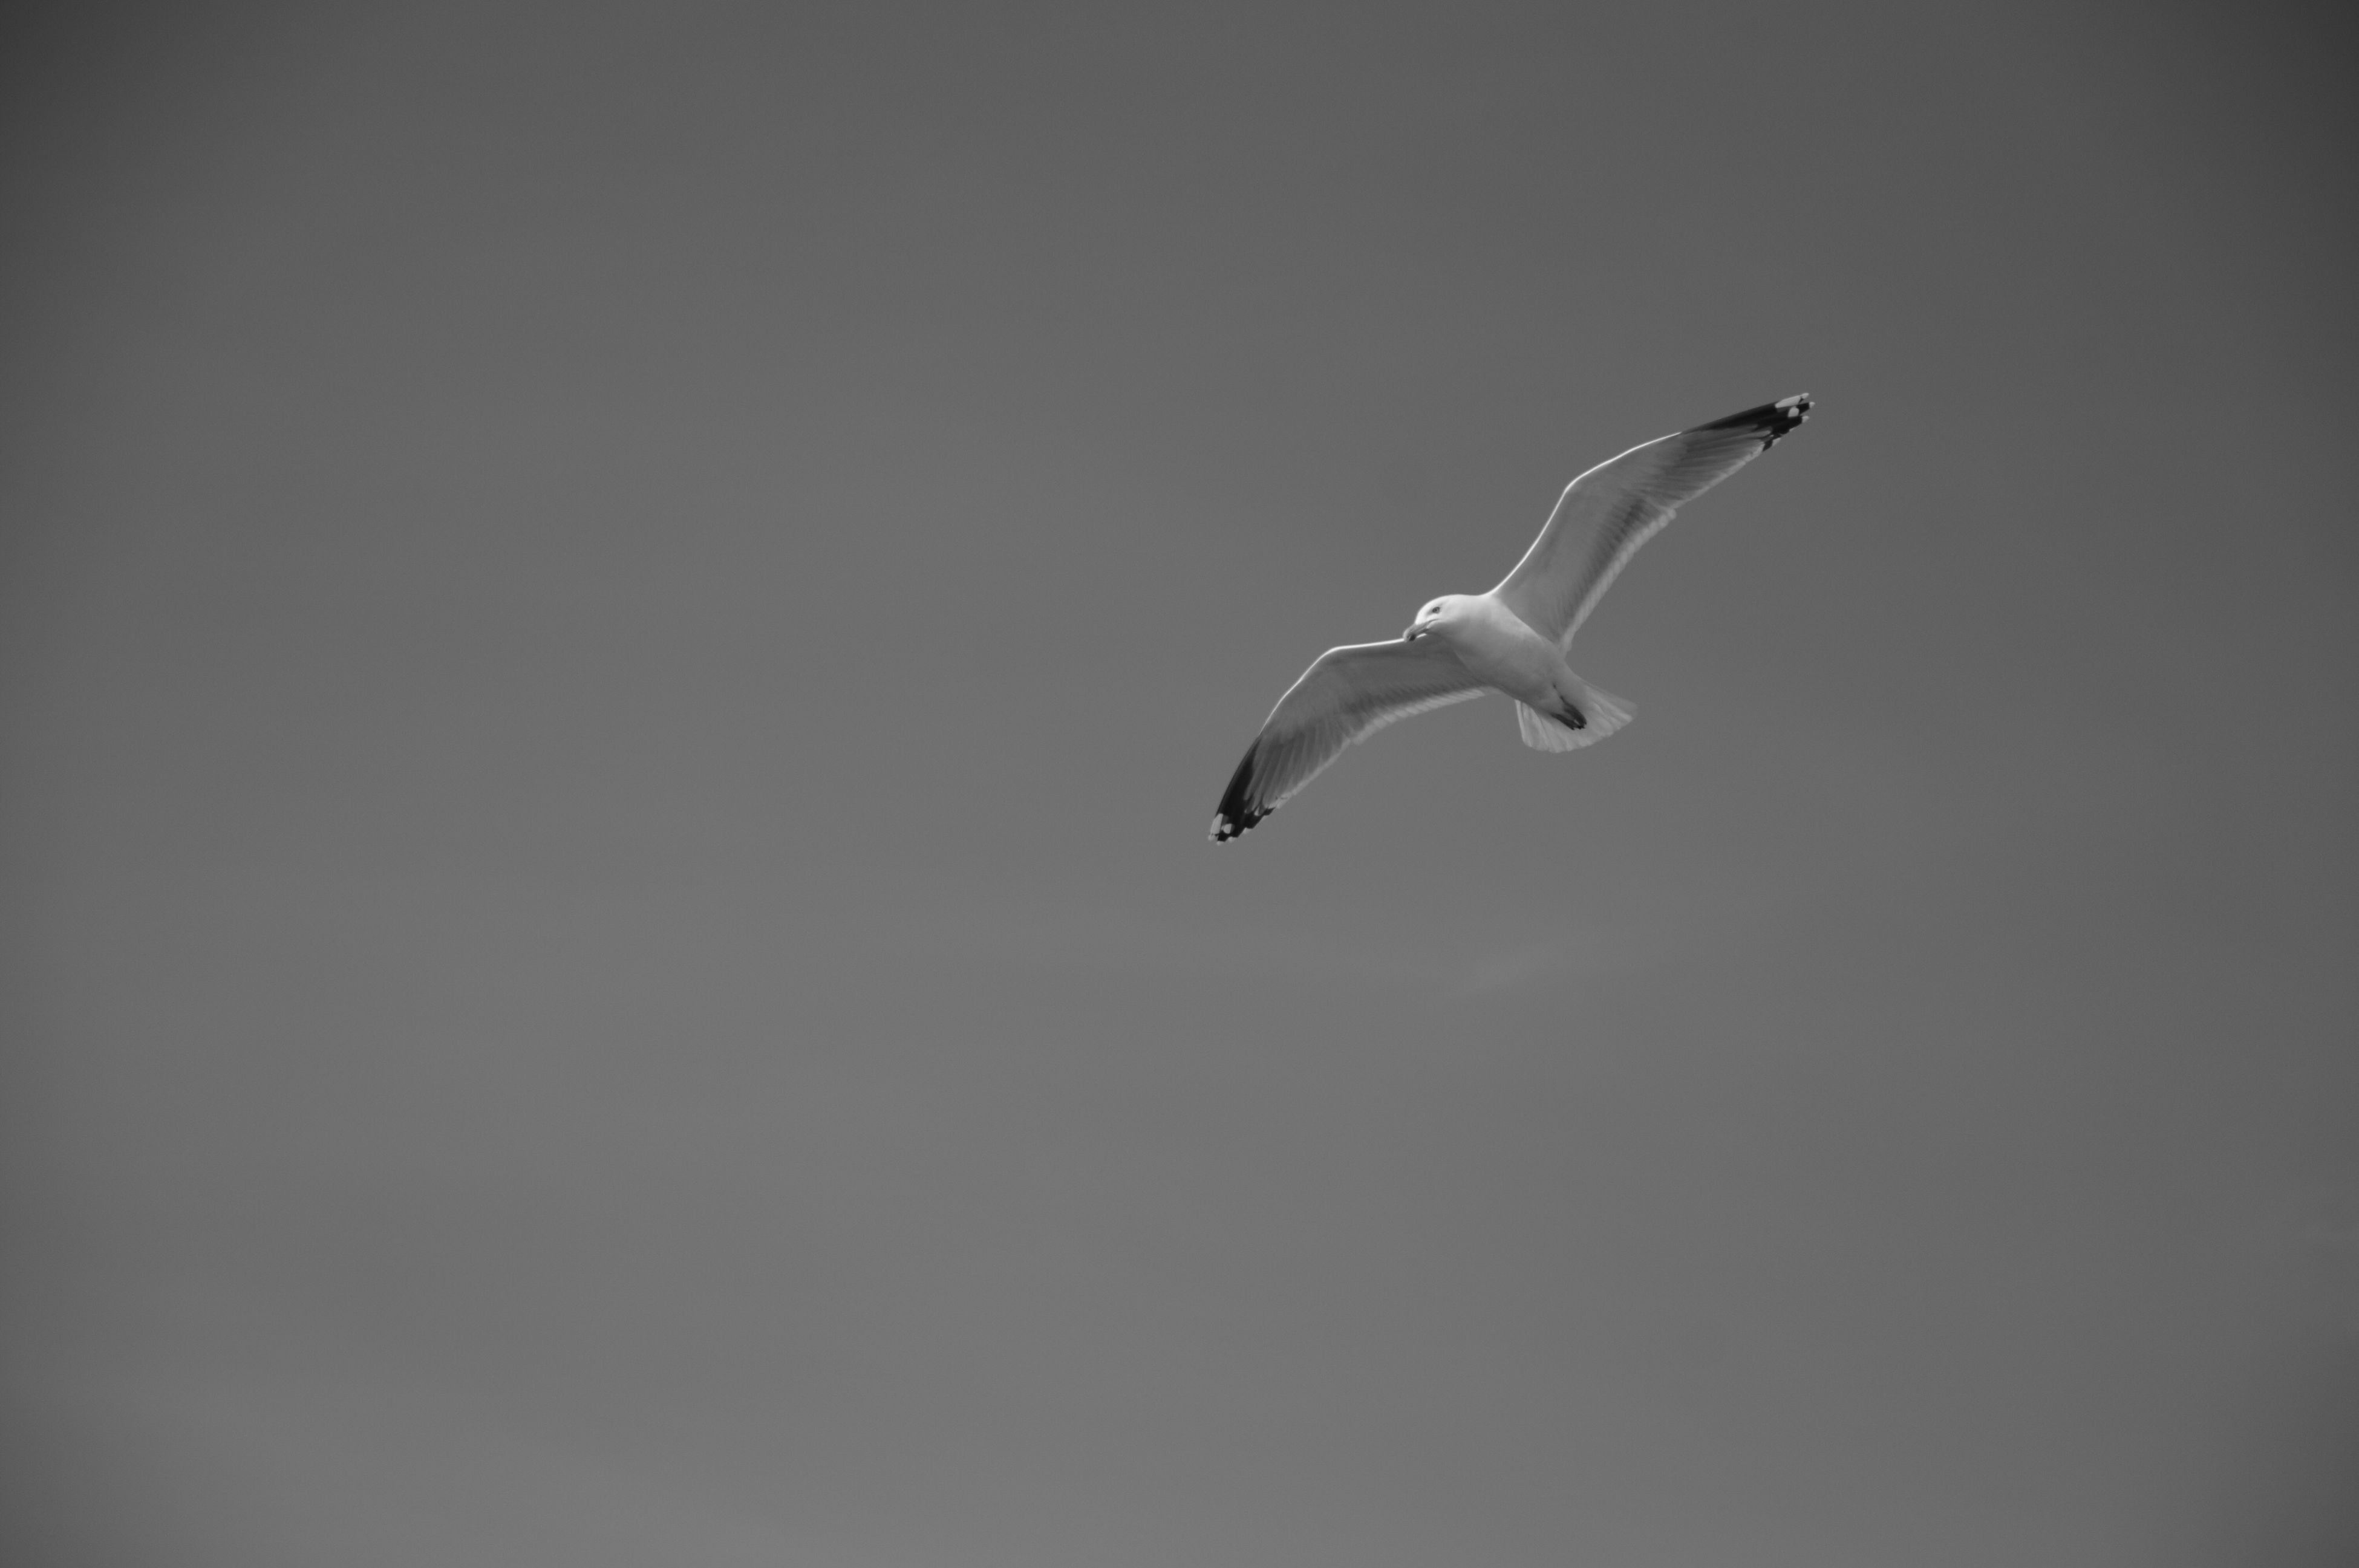 one animal, flying, animals in the wild, mid-air, animal themes, spread wings, copy space, bird, animal wildlife, nature, low angle view, motion, no people, day, outdoors, clear sky, beauty in nature, full length, swan, sky